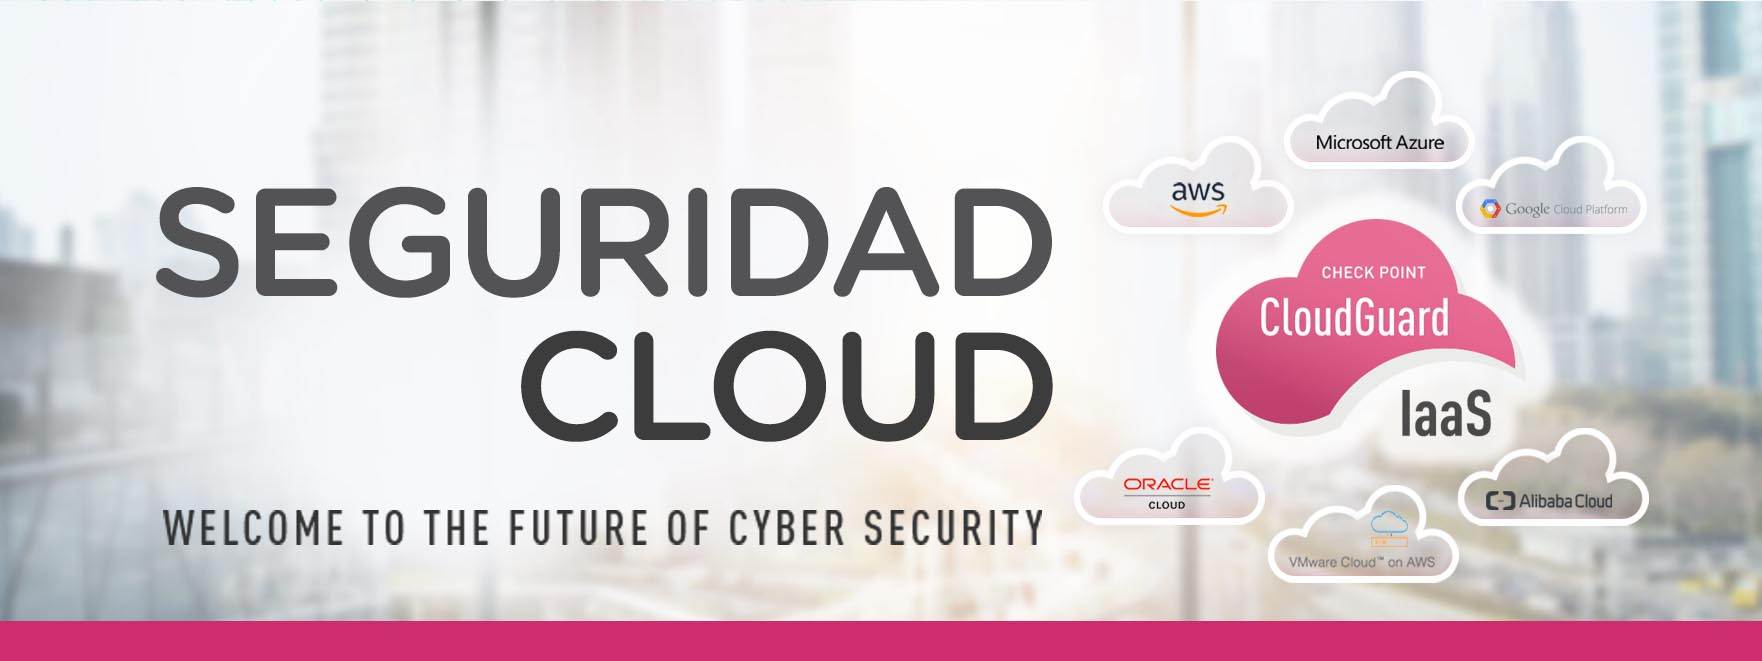 Cloud Securuty seguridad nube cloudguard checkpoint iterati